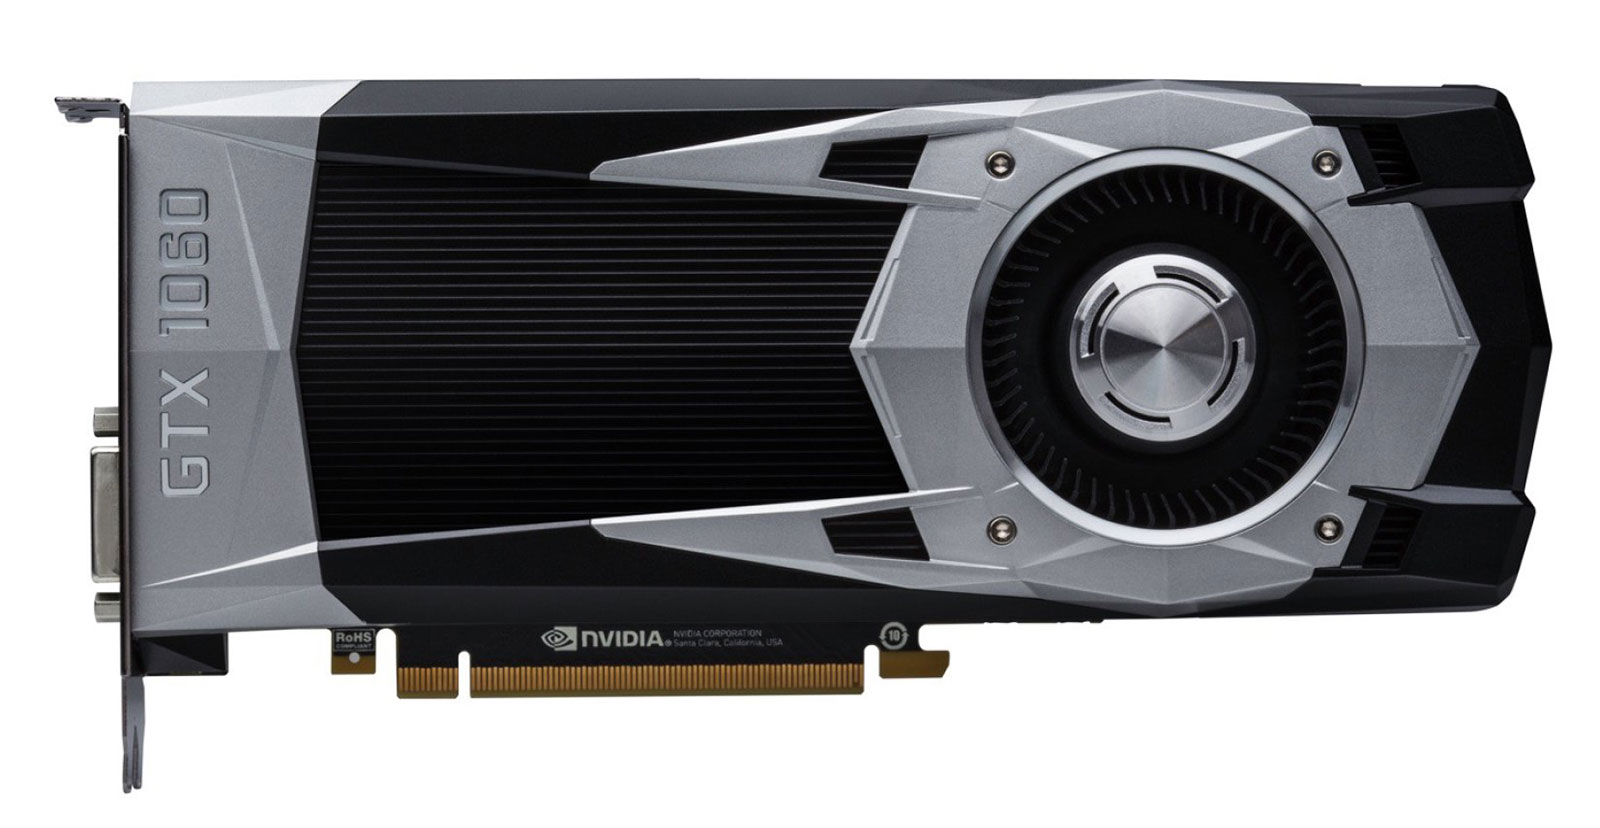 NVIDIA's GeForce GTX 1060 delivers GTX 980 speeds for $249